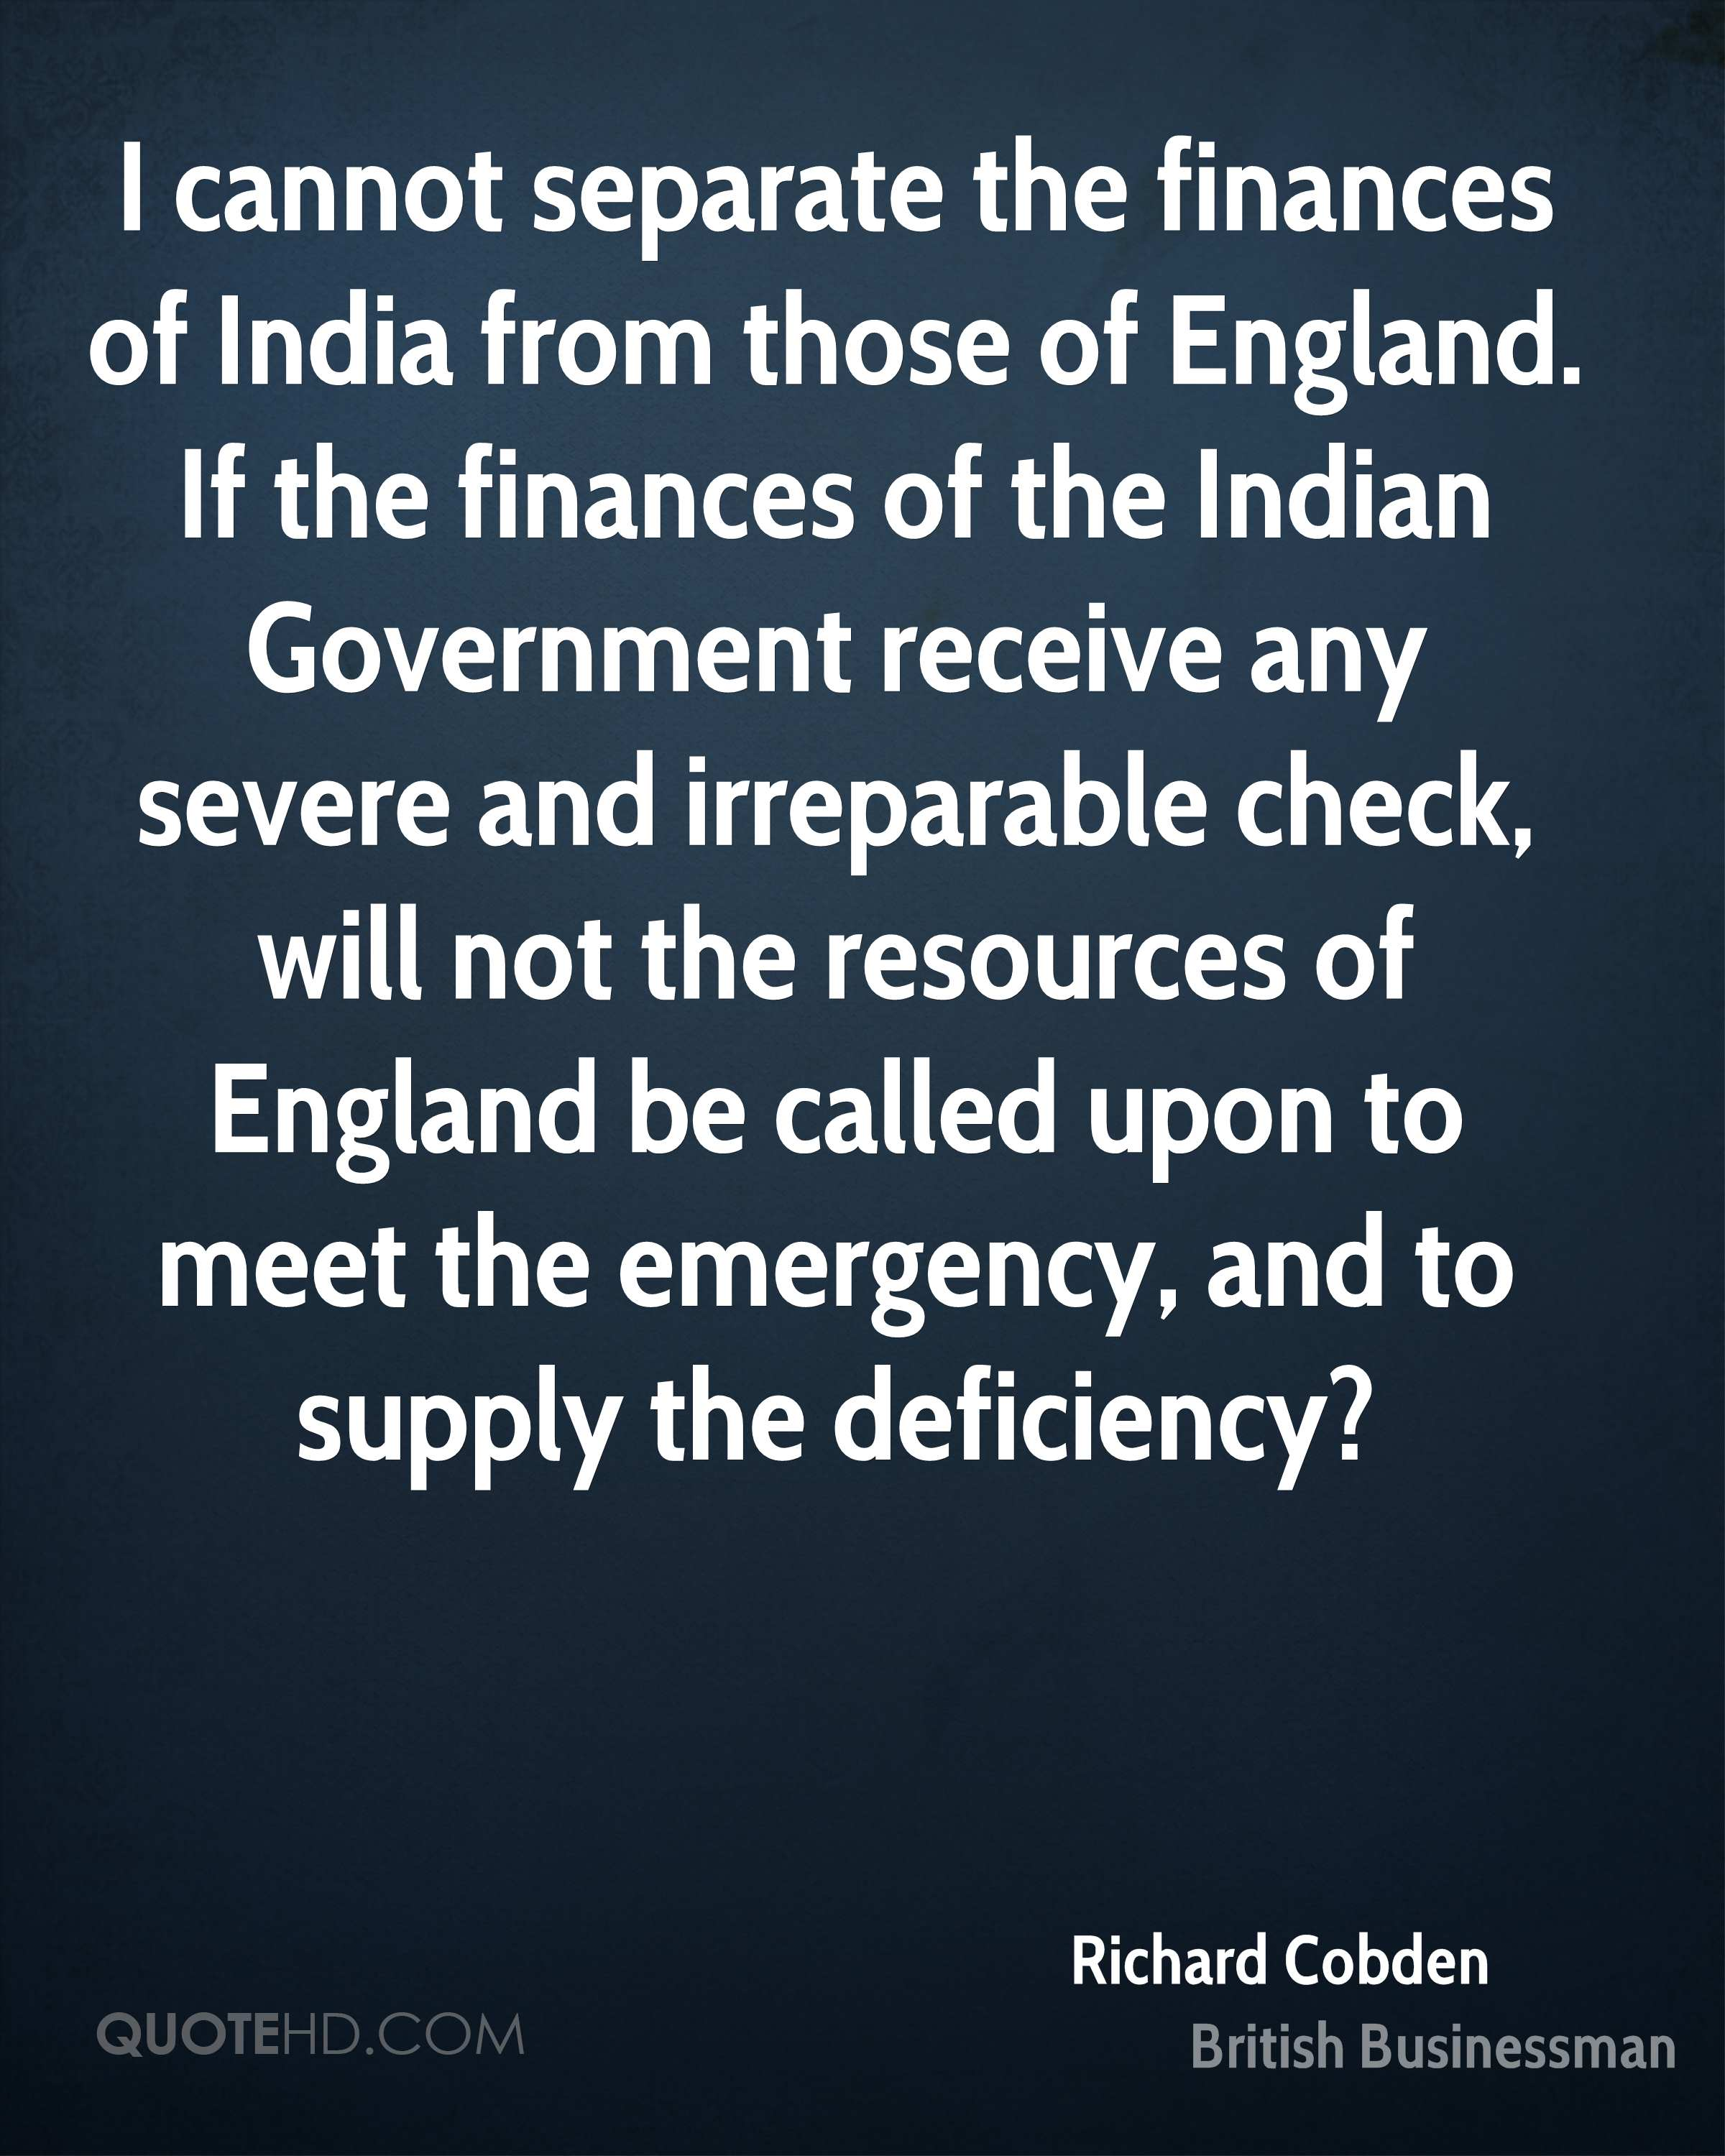 I cannot separate the finances of India from those of England. If the finances of the Indian Government receive any severe and irreparable check, will not the resources of England be called upon to meet the emergency, and to supply the deficiency?